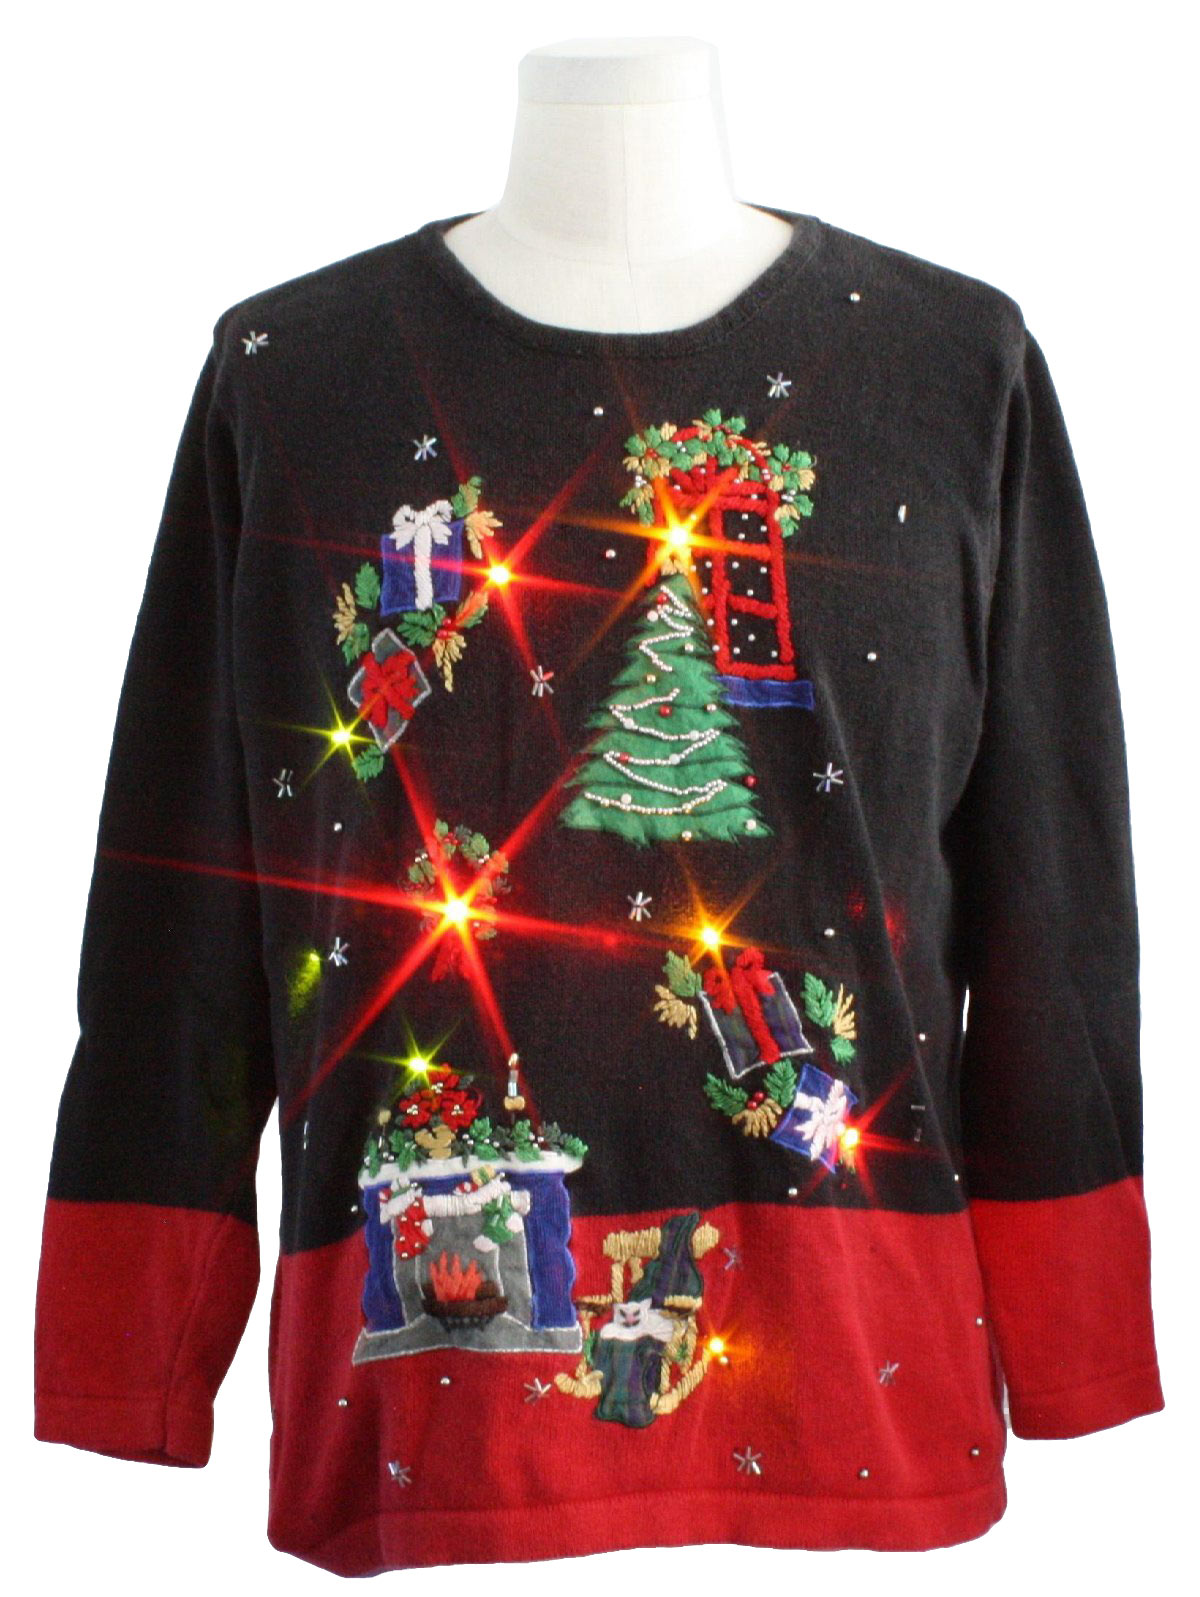 Lightup Ugly Christmas Sweater Victoria Jones Unisex Black And Red Base Backgrounds Ramie